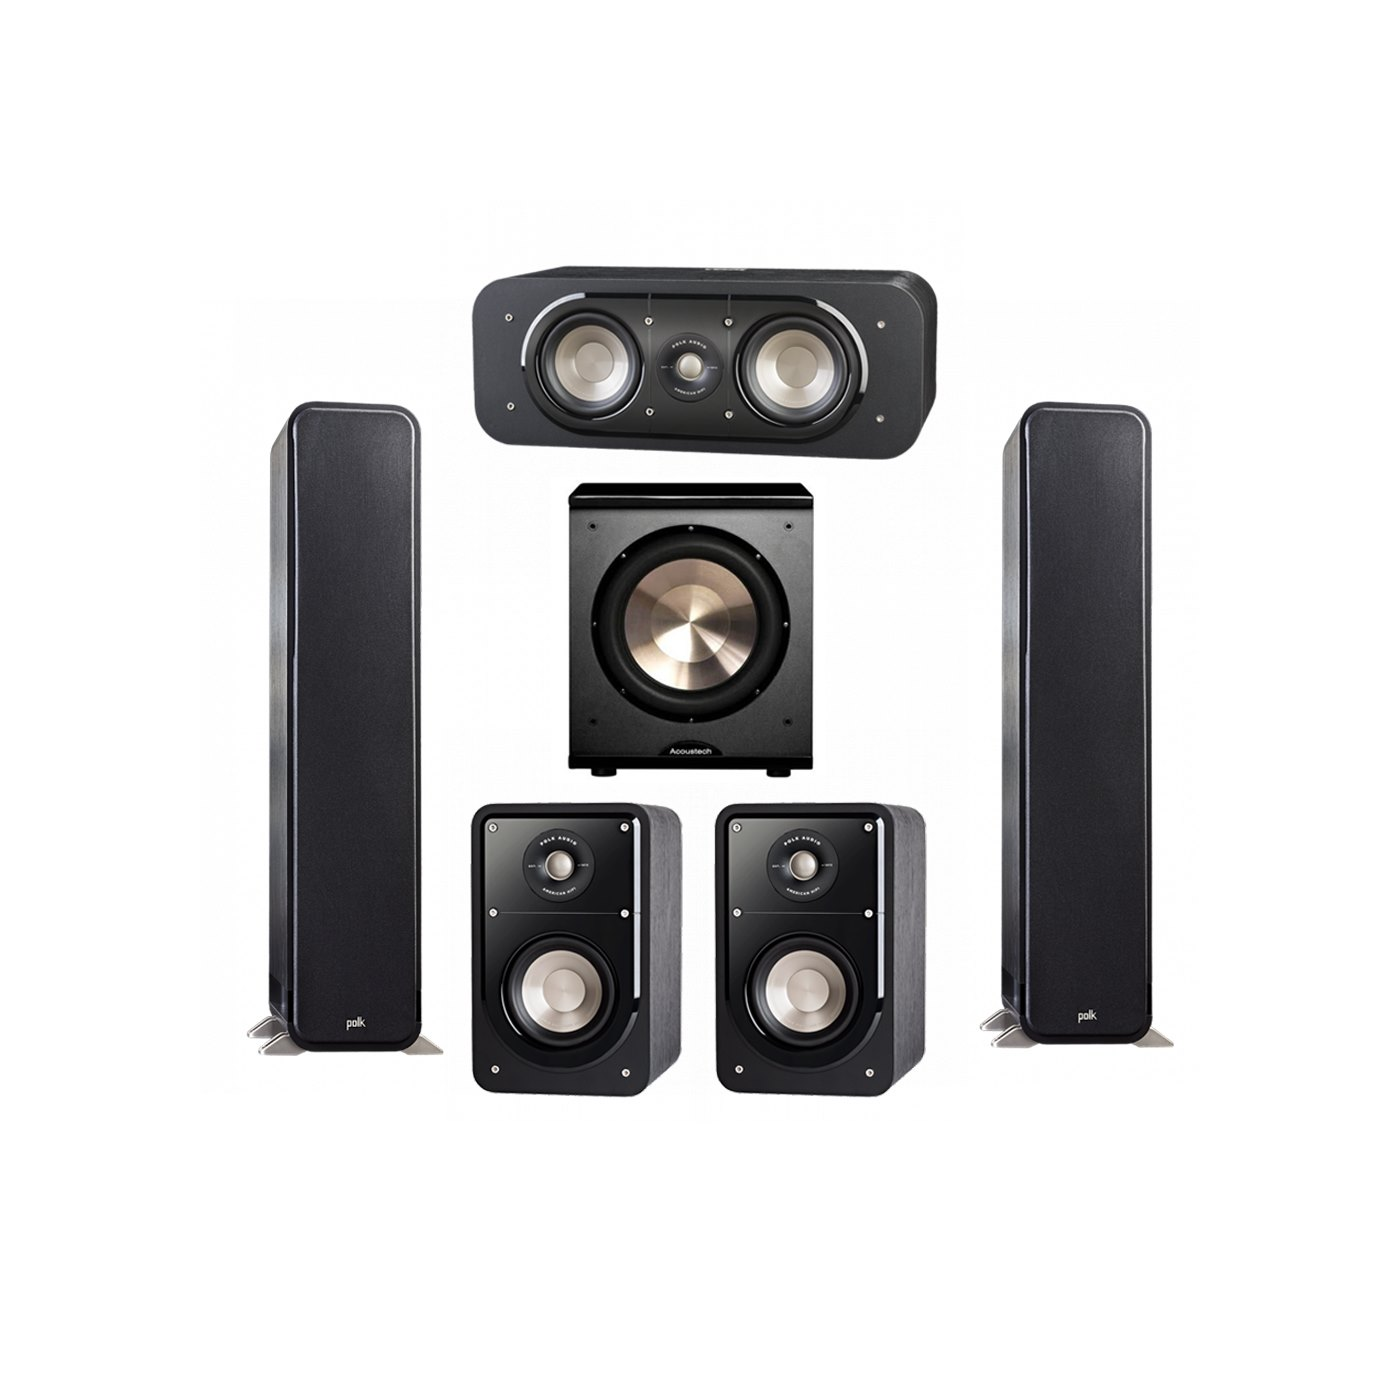 Polk Audio Signature 5.1 System with 2 S55 Tower Speaker, 1 Polk S30 Center Speaker, 2 Polk S15 Bookshelf Speaker, 1 BIC/Acoustech Platinum Series PL-200 Subwoofer